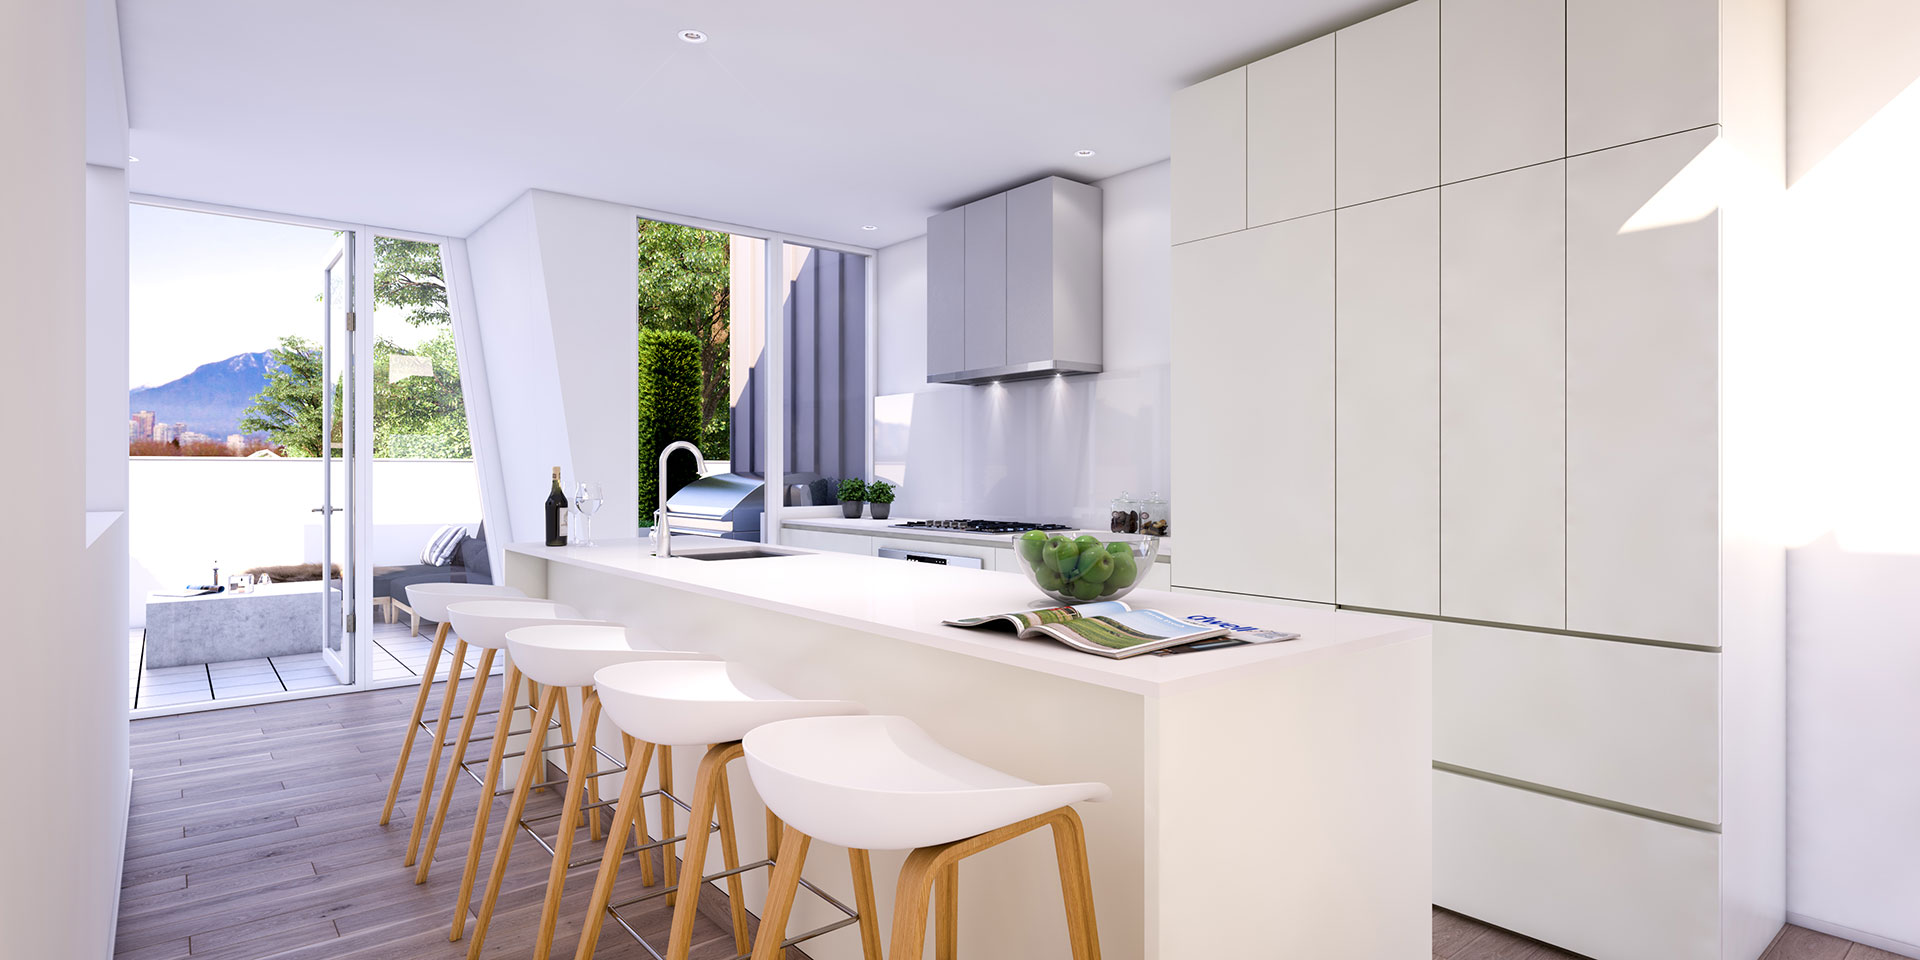 Turner's Dairy Townhouse Project - Unit 3 Kitchen Render